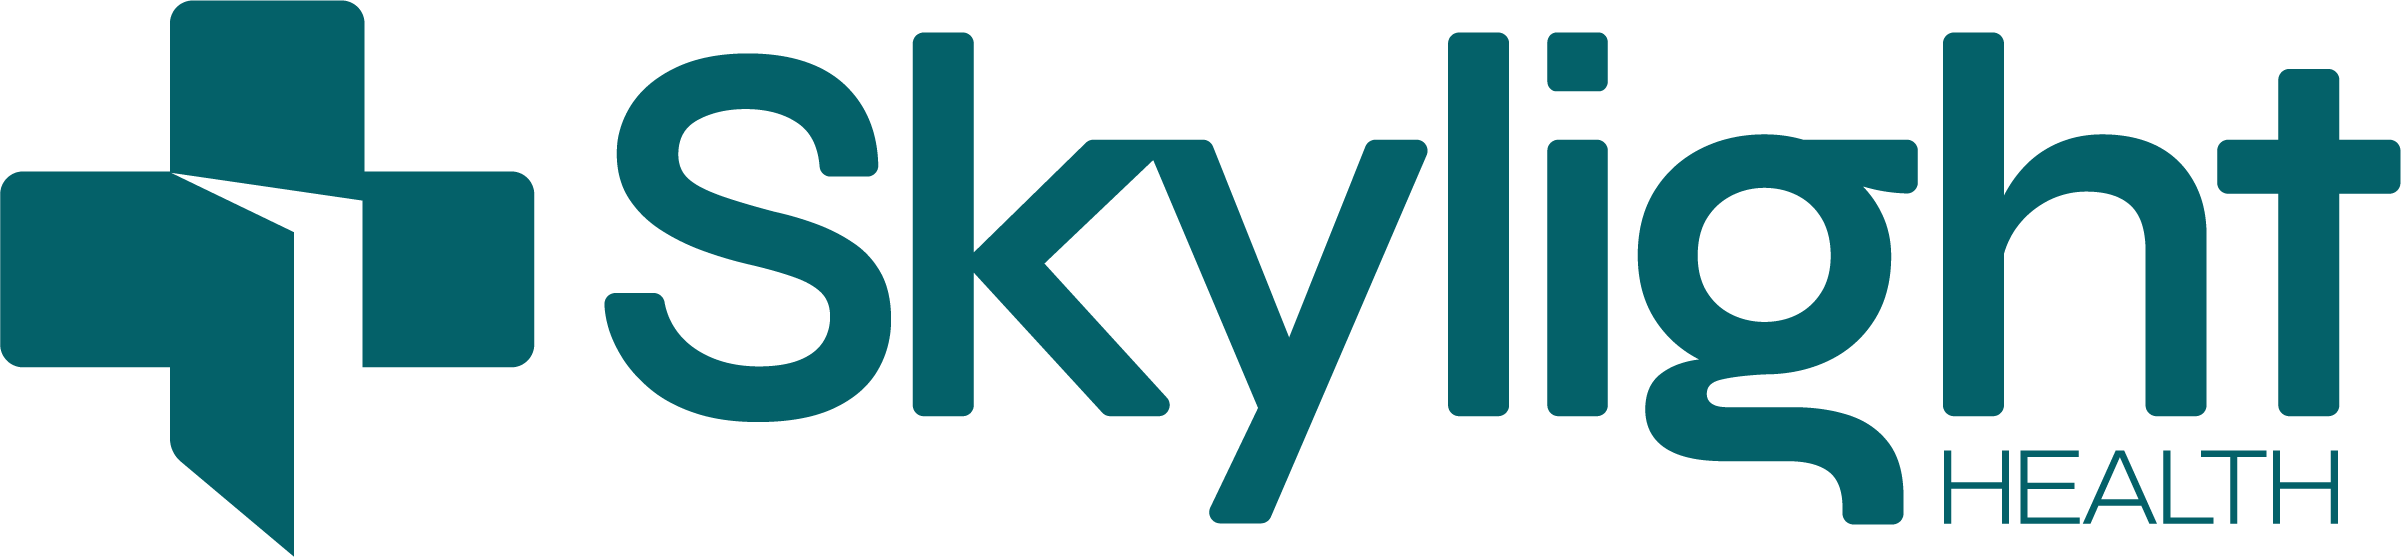 Skylight Health to Enter into 15th State with Acquisition of Tennessee Clinic with $2.2 million in Revenue and $0